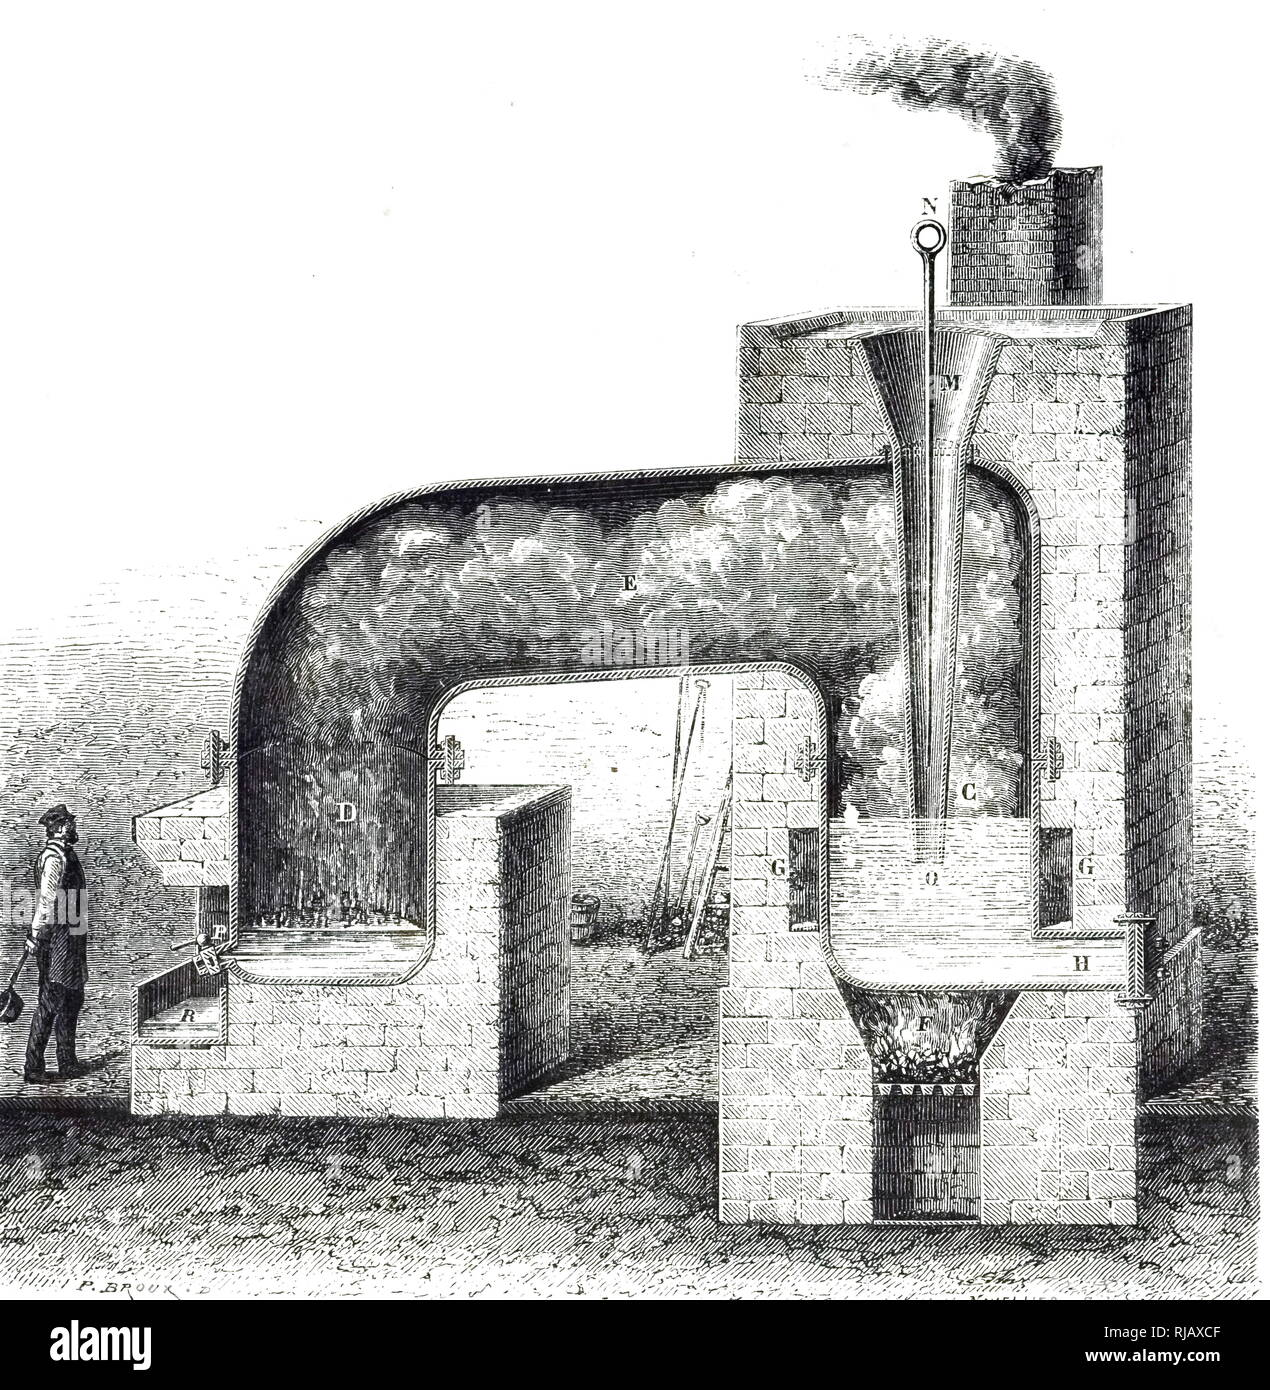 An engraving depicting a sectional view of a German still for purification of crude sulphur. Dated 19th century - Stock Image